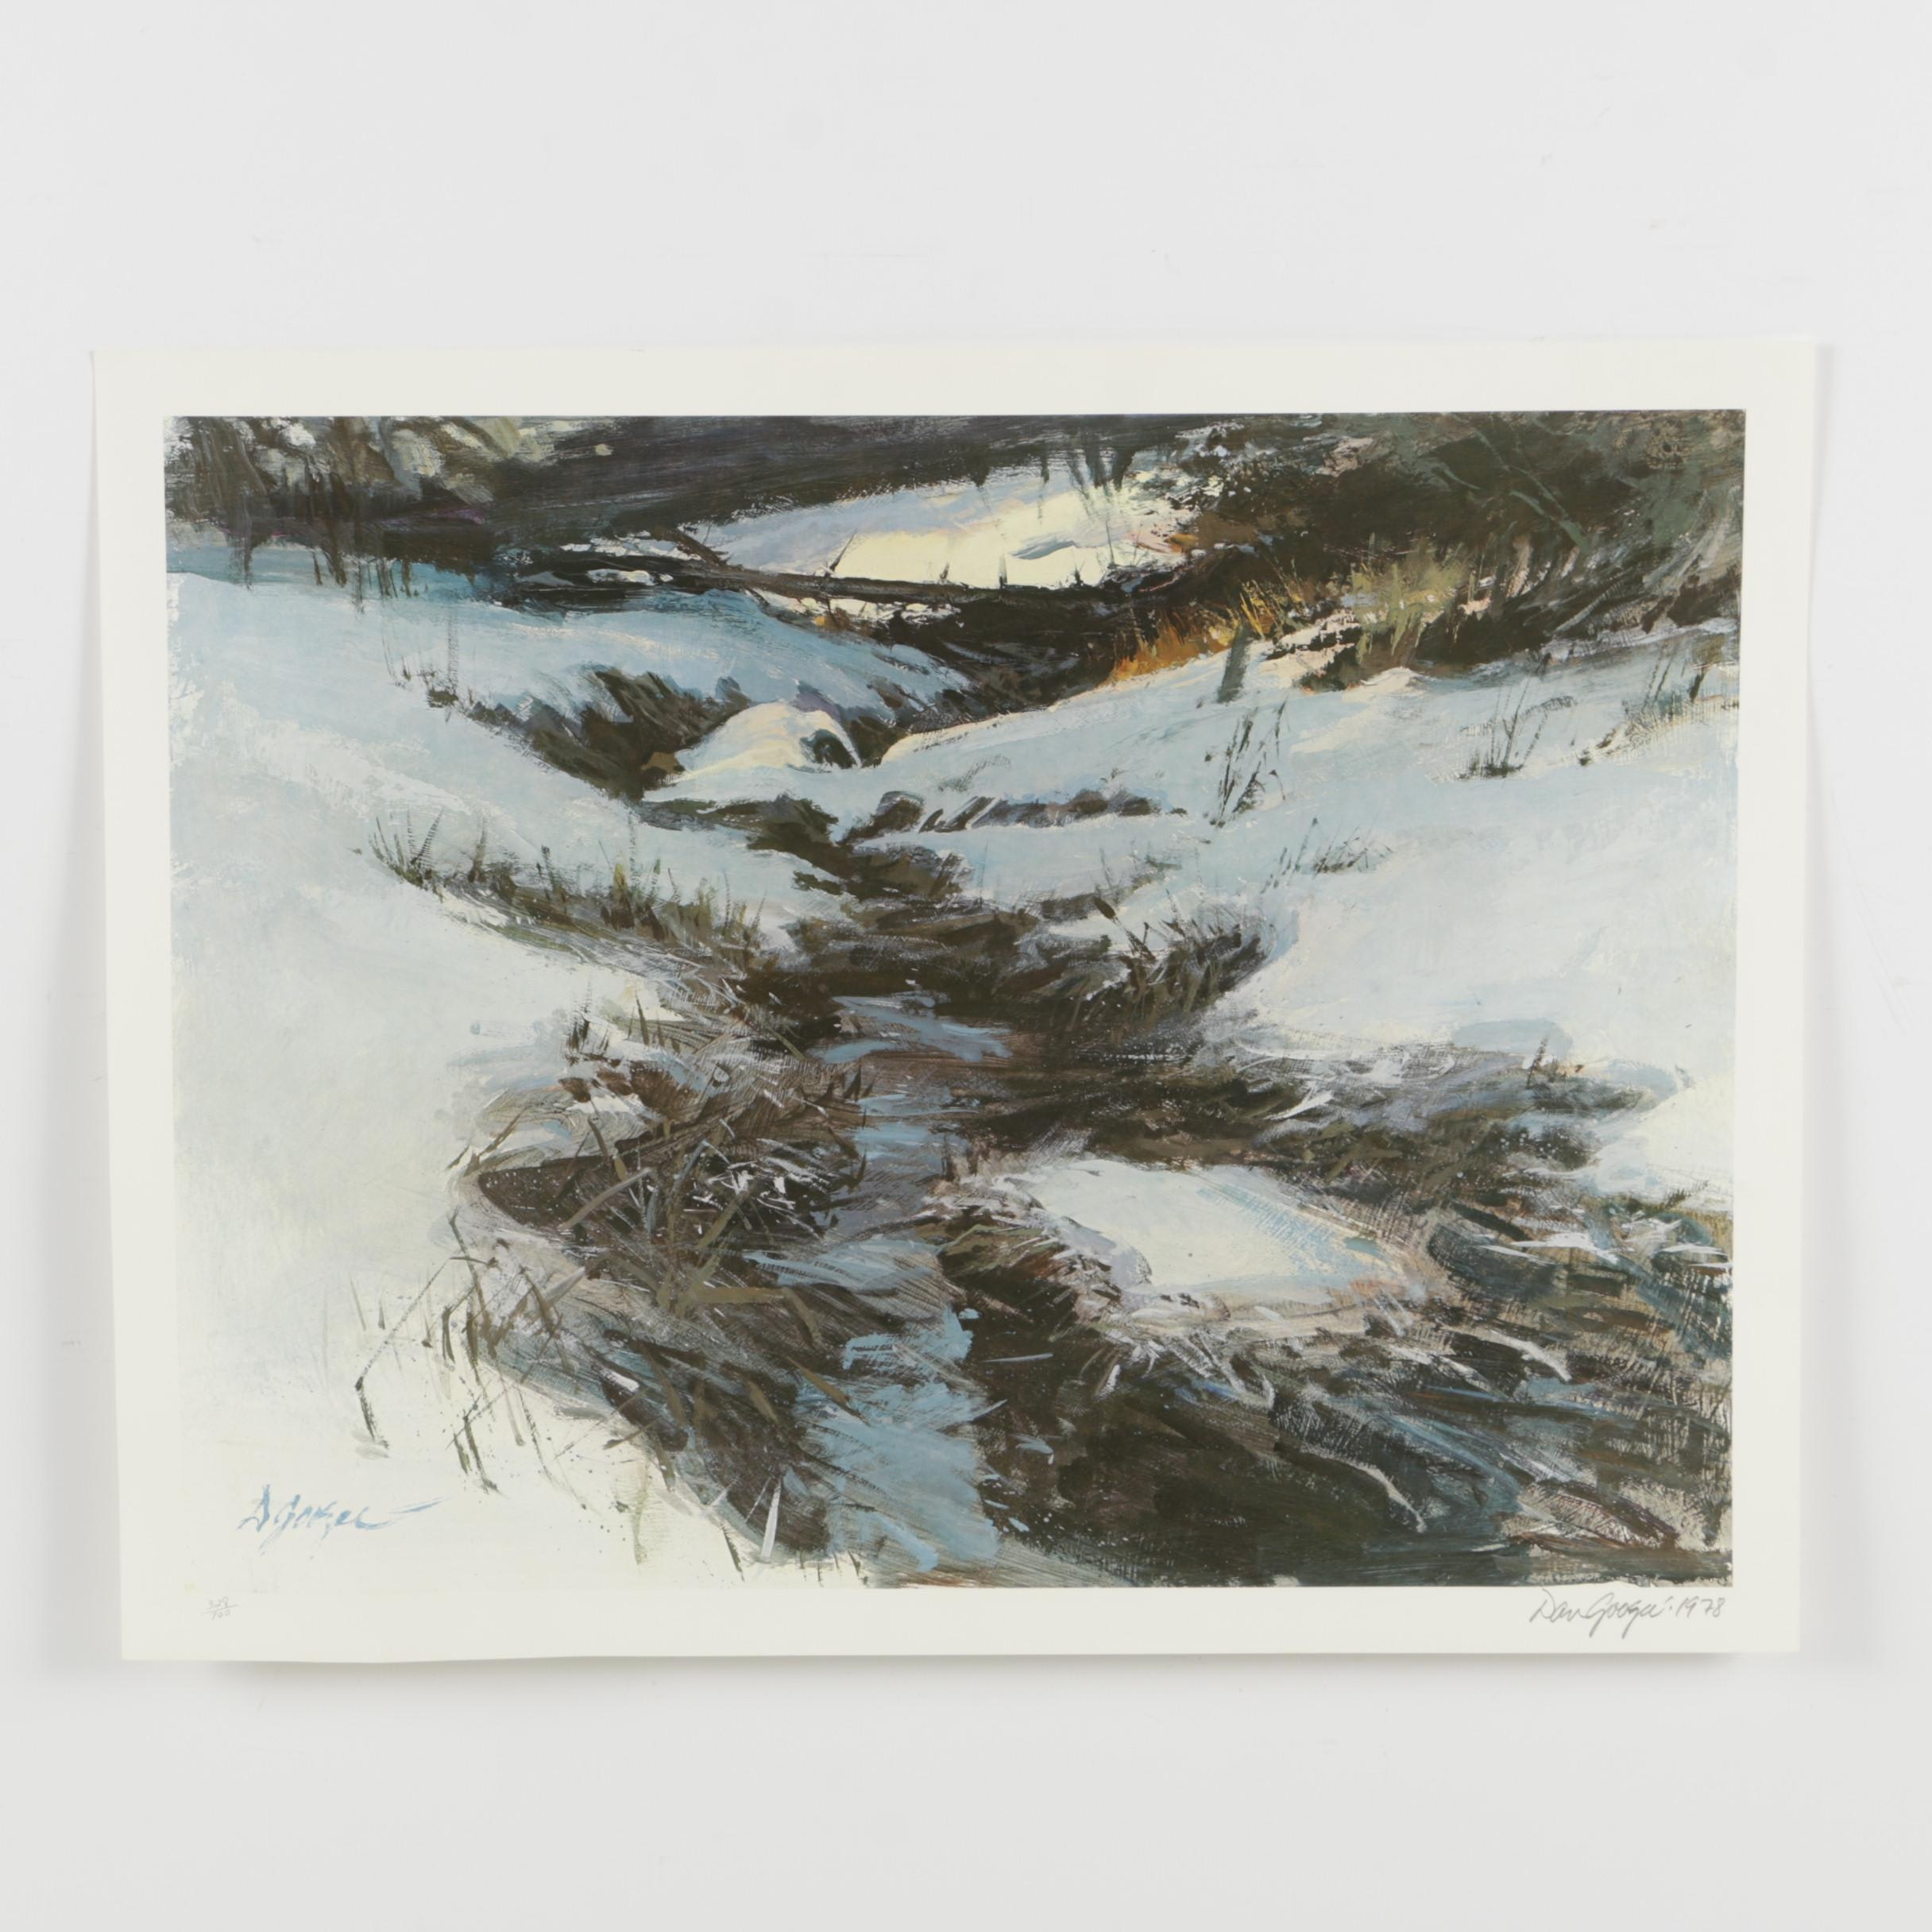 Dan Goozee Limited Edition Offset Lithograph of a Winter Landscape